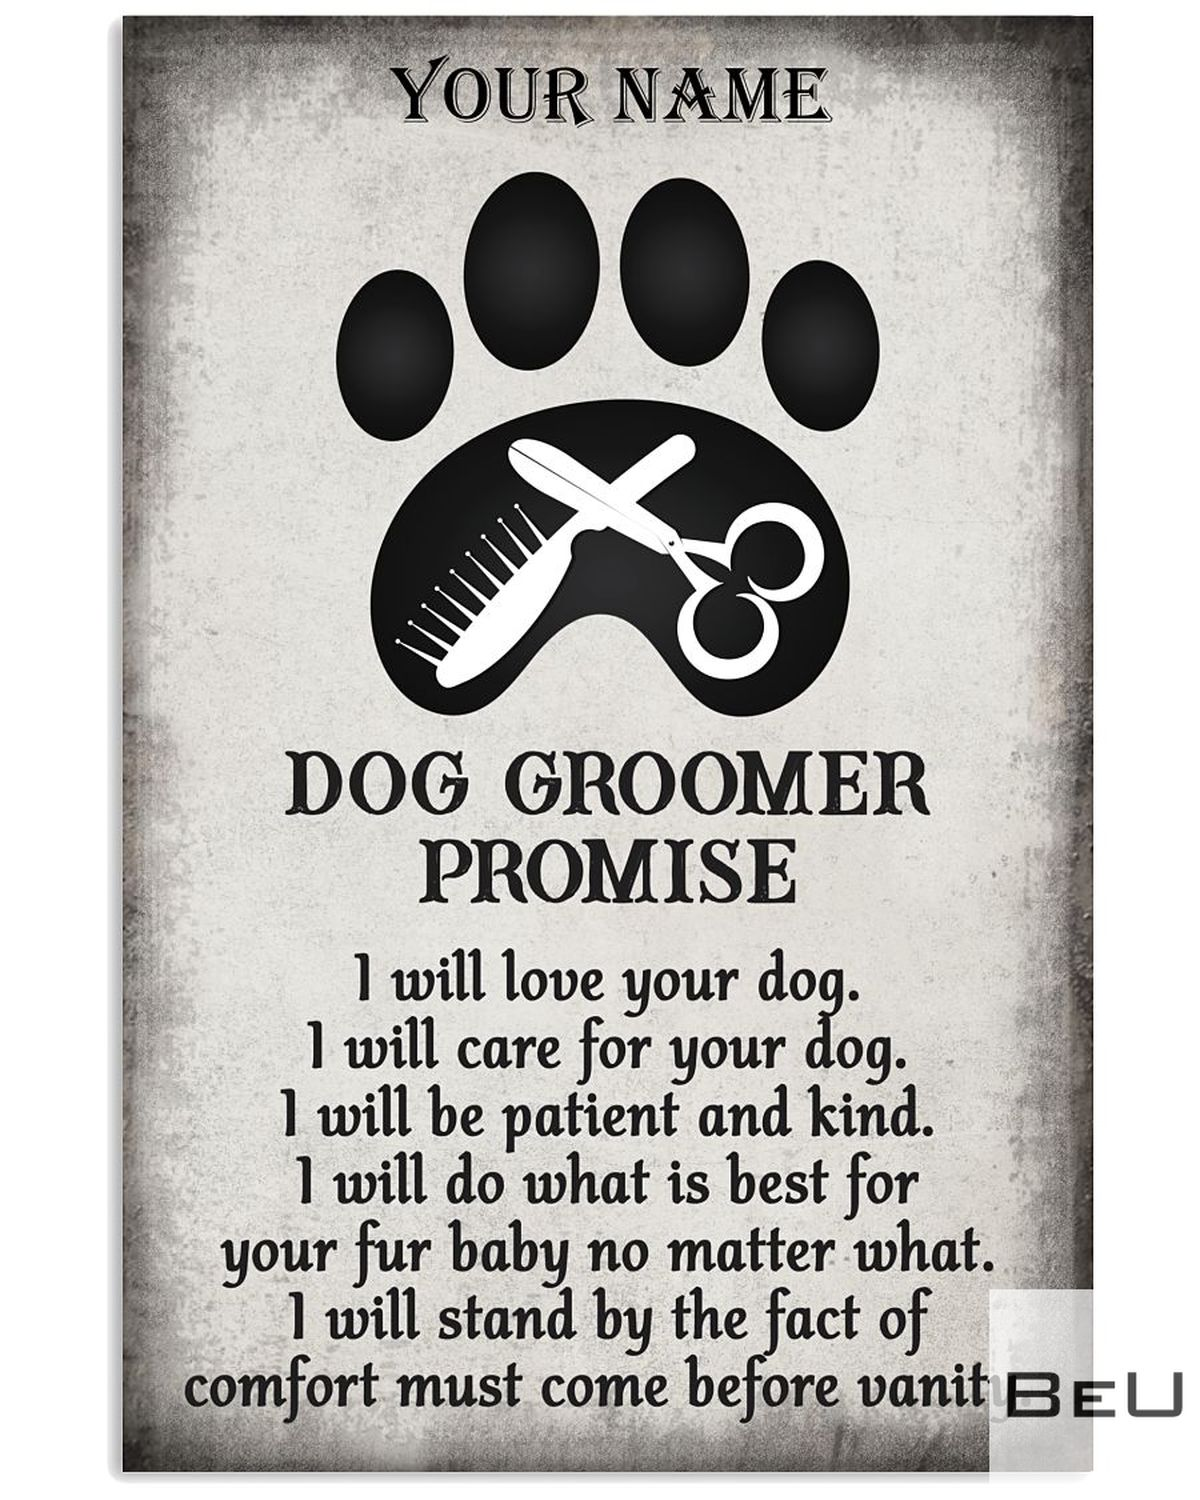 Personalized Dog Groomer Promise I Will Love Your Dog Poster